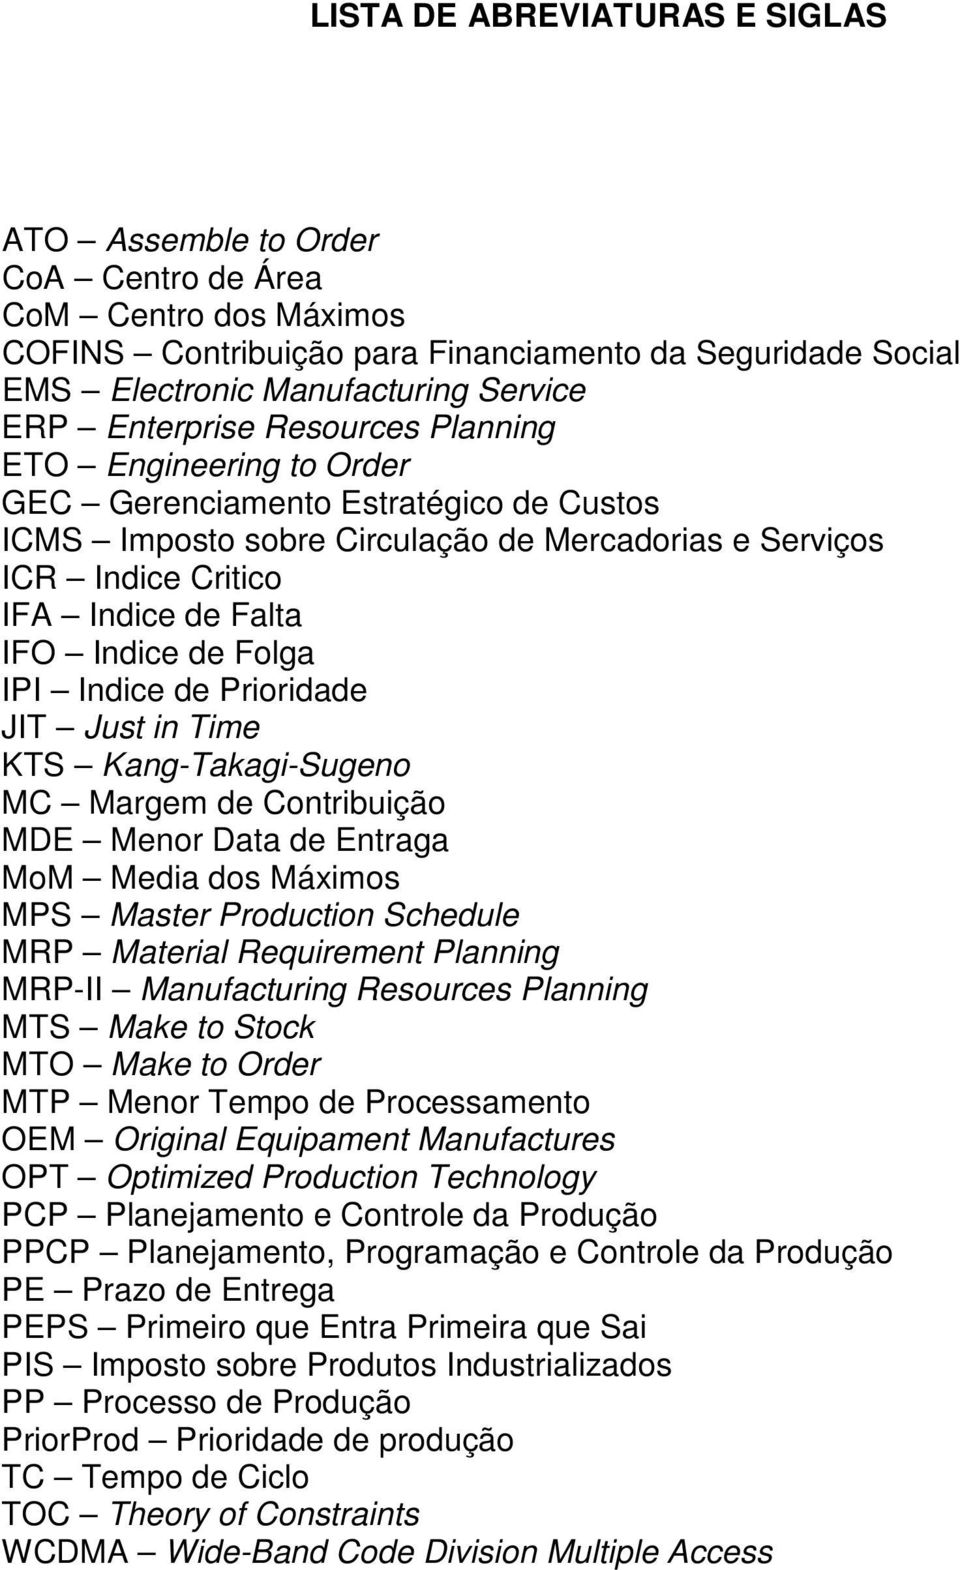 Indice de Folga IPI Indice de Prioridade JIT Just in Time KTS Kang-Takagi-Sugeno MC Margem de Contribuição MDE Menor Data de Entraga MoM Media dos Máximos MPS Master Production Schedule MRP Material